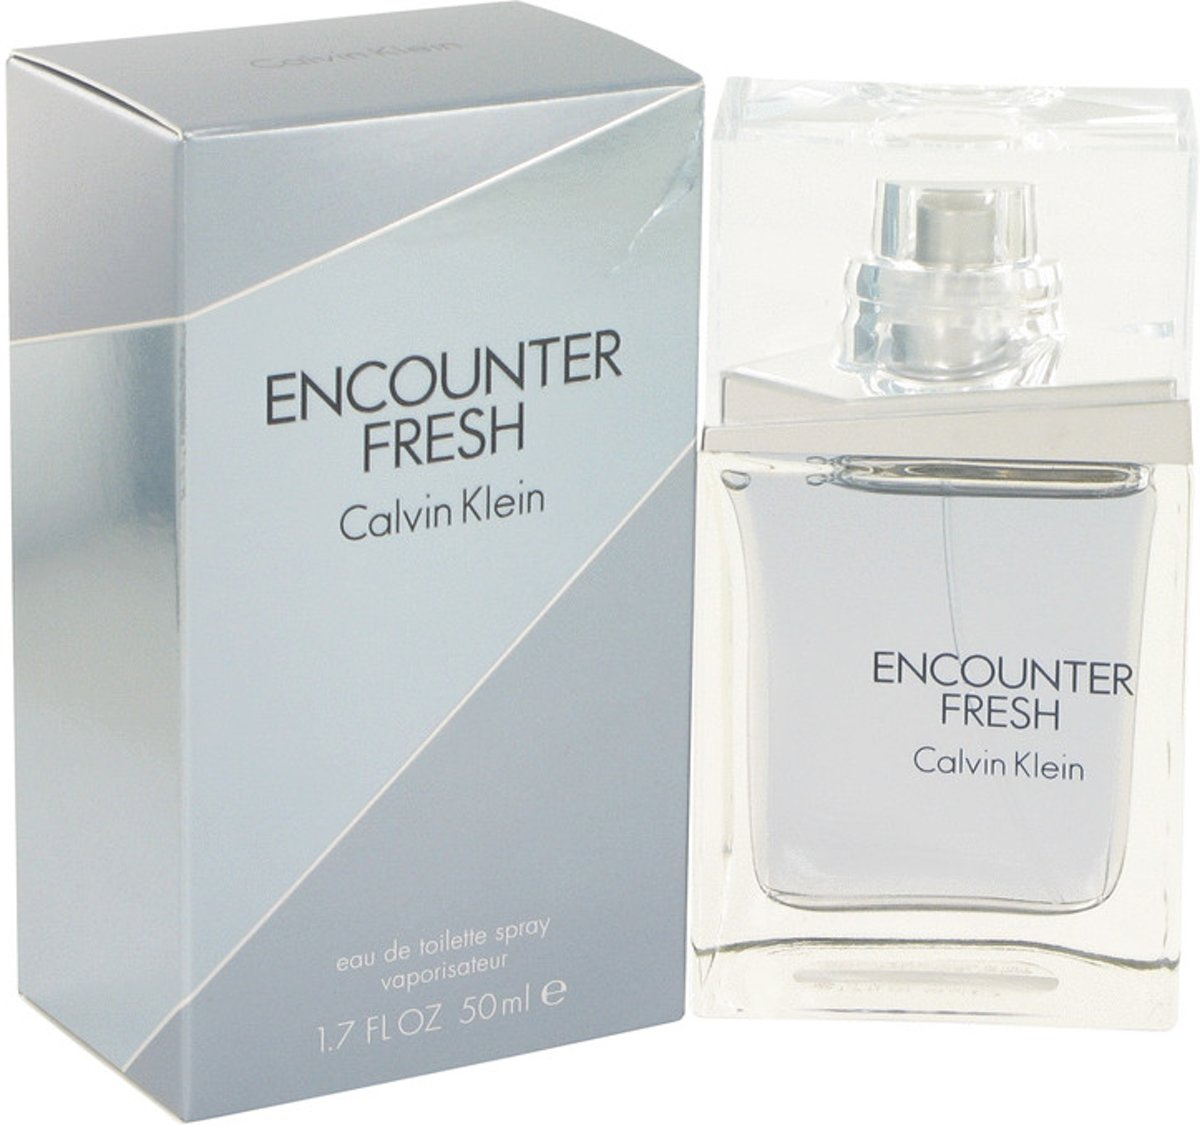 CALVIN KLEIN ENCOUNTER - 50ML - Eau de toilette